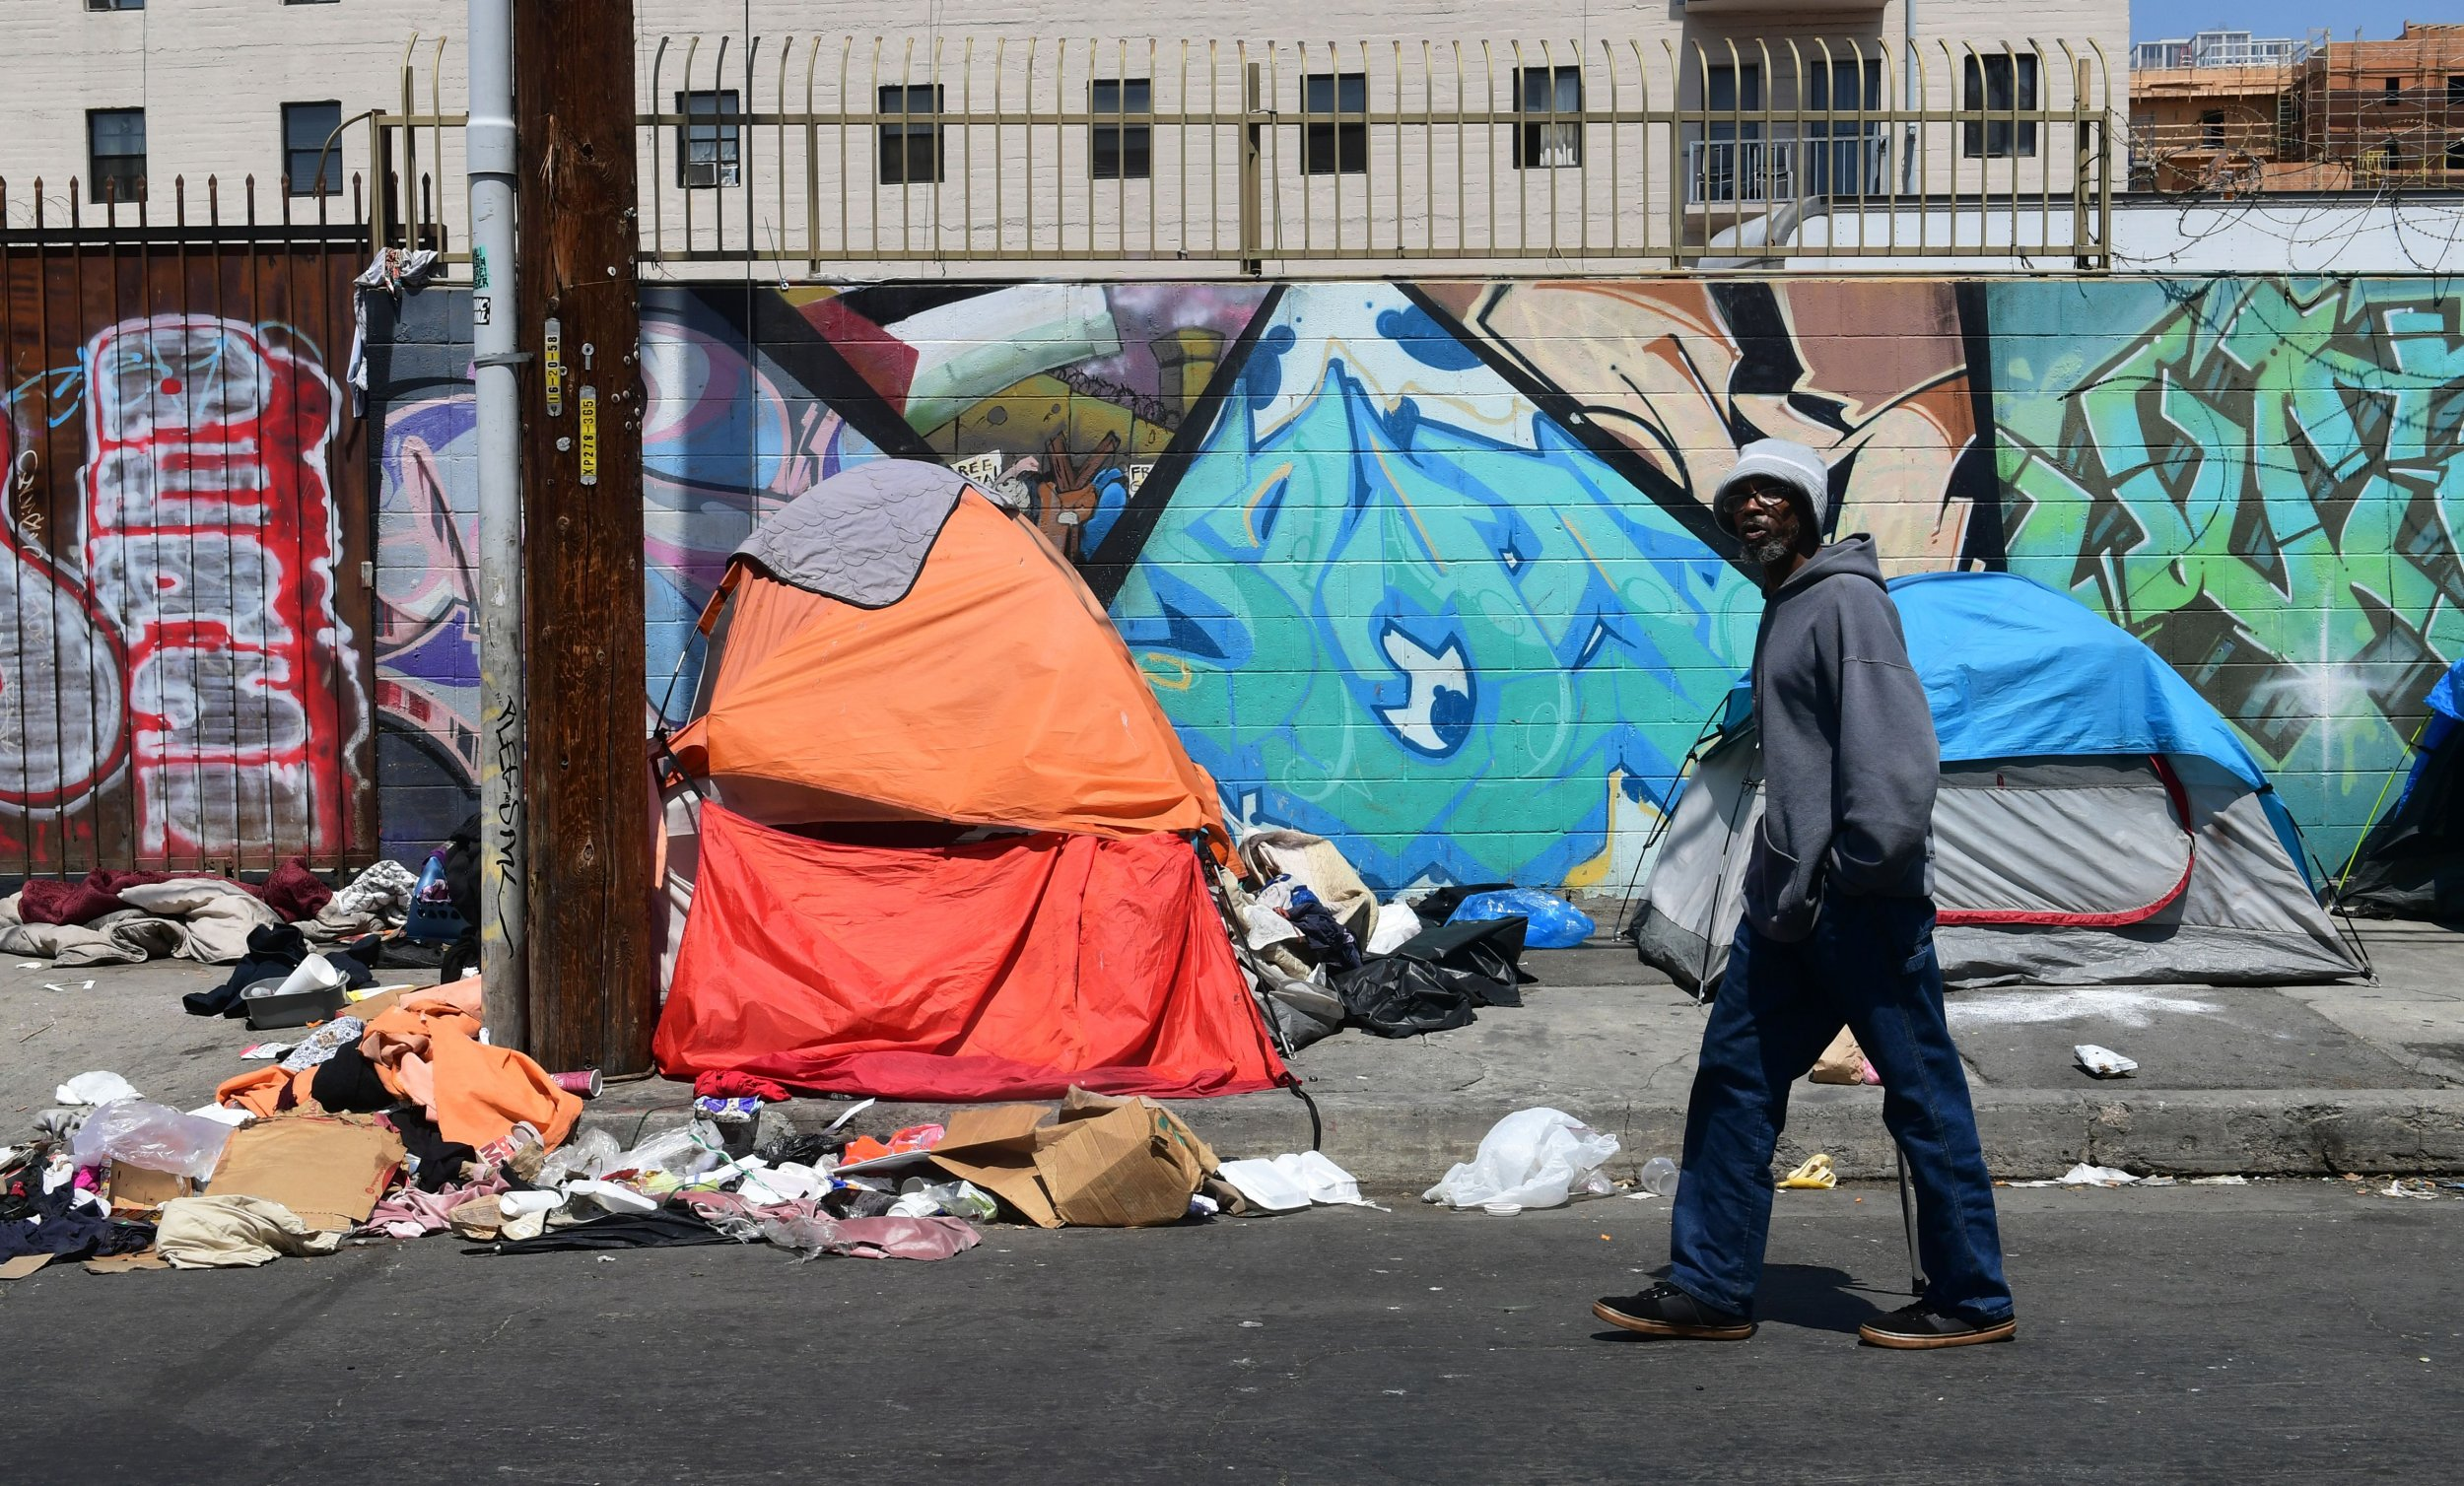 A pedestrian walks past tents and trash on a sidewalk in downtown Los Angeles on May 30, 2019.